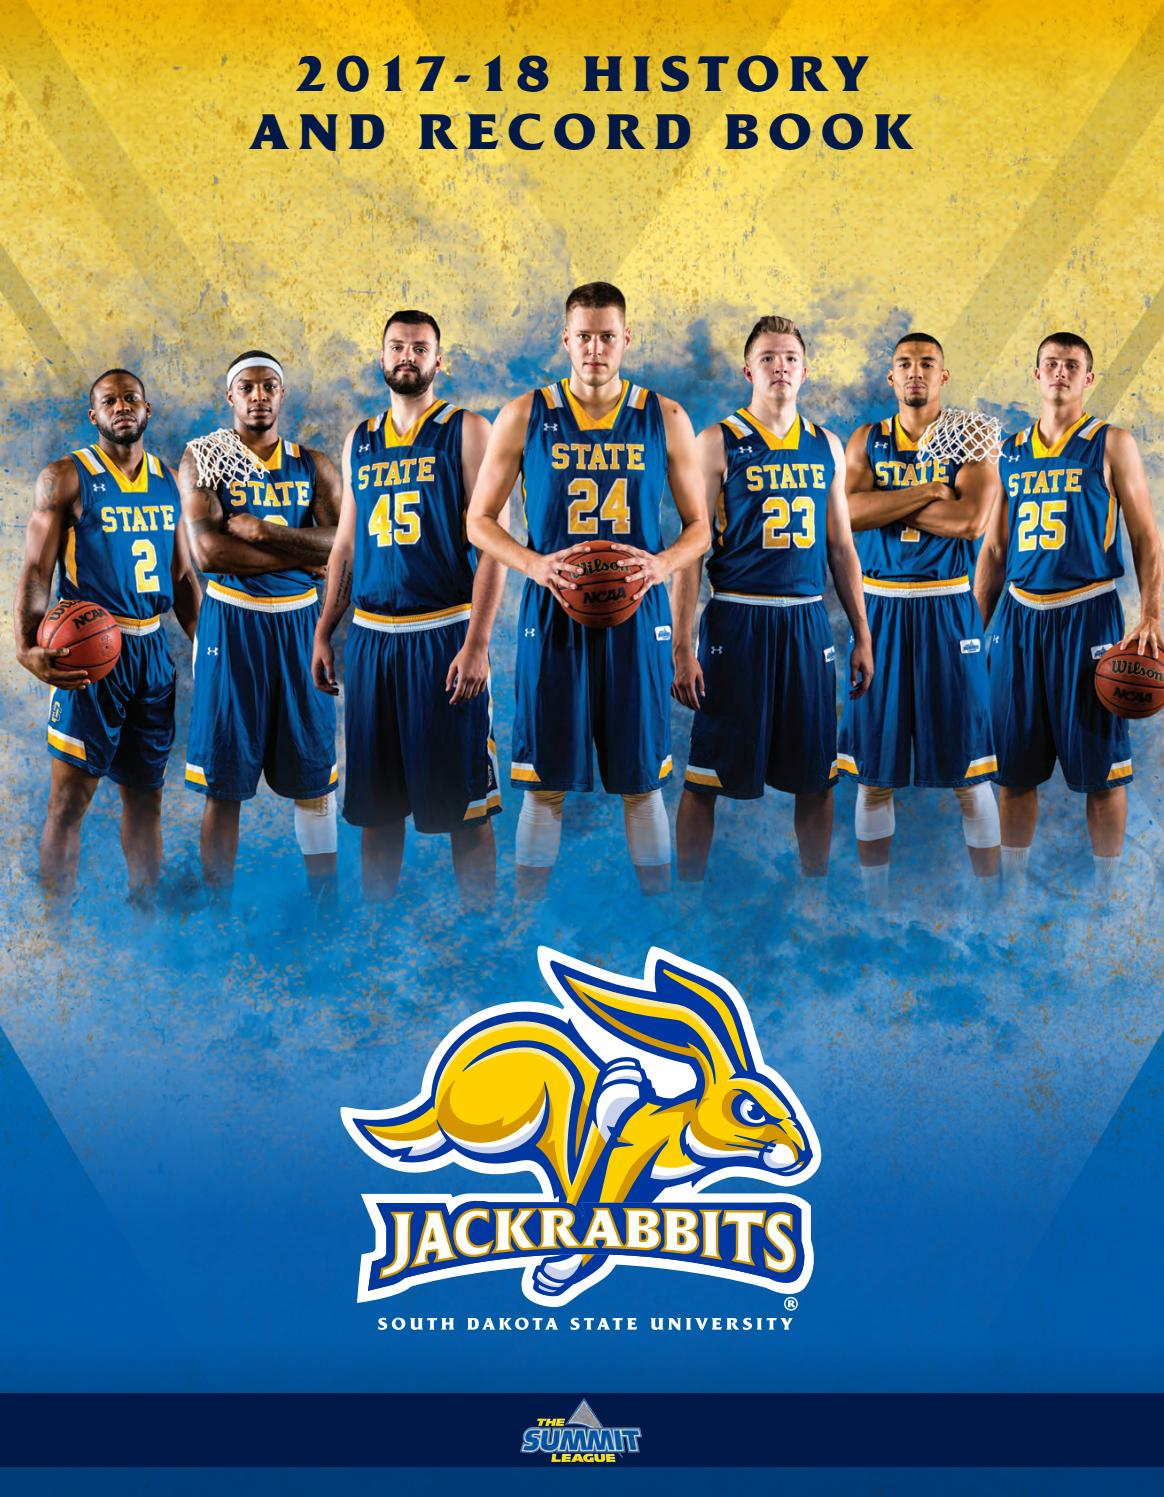 huge discount 3683b f9d98 2017-18 South Dakota State Men s Basketball Record Book by South Dakota  State University Athletics - issuu